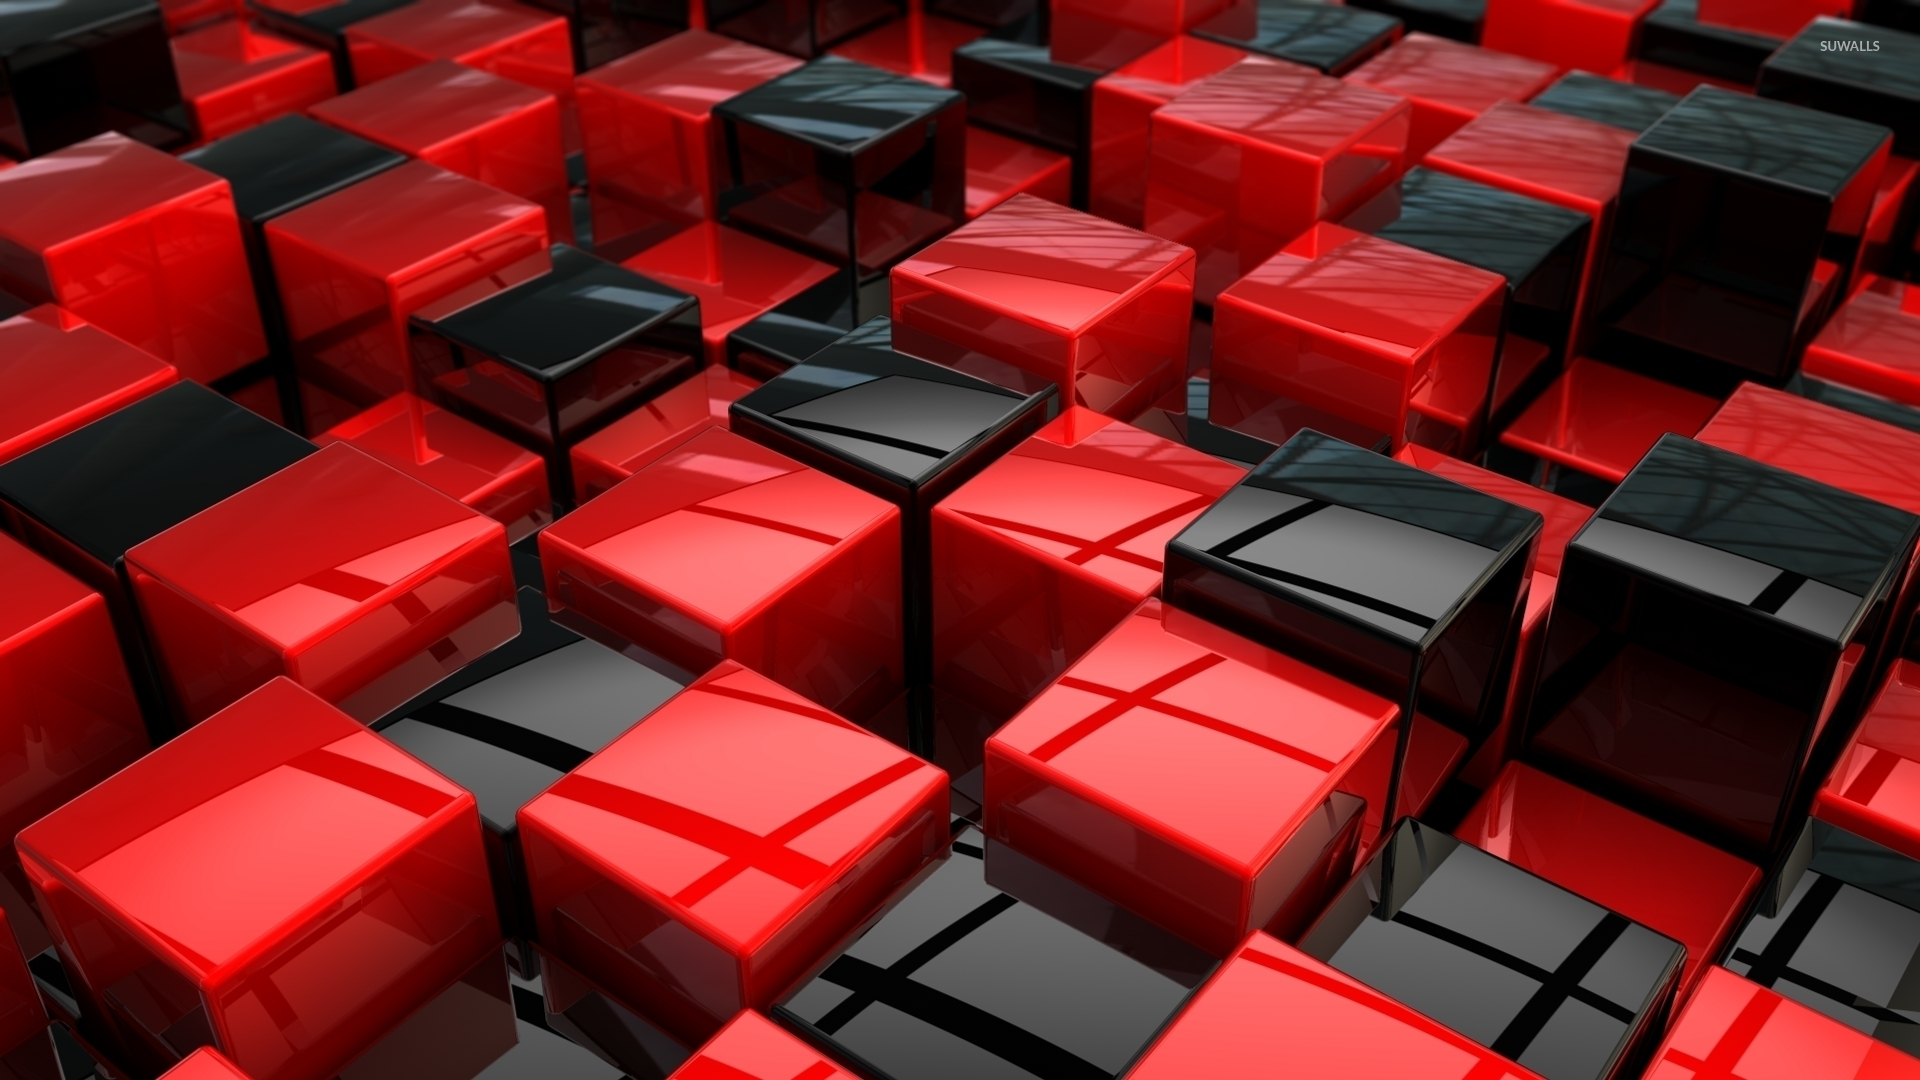 Red and black cubes wallpaper   3D wallpapers   33140 1920x1080